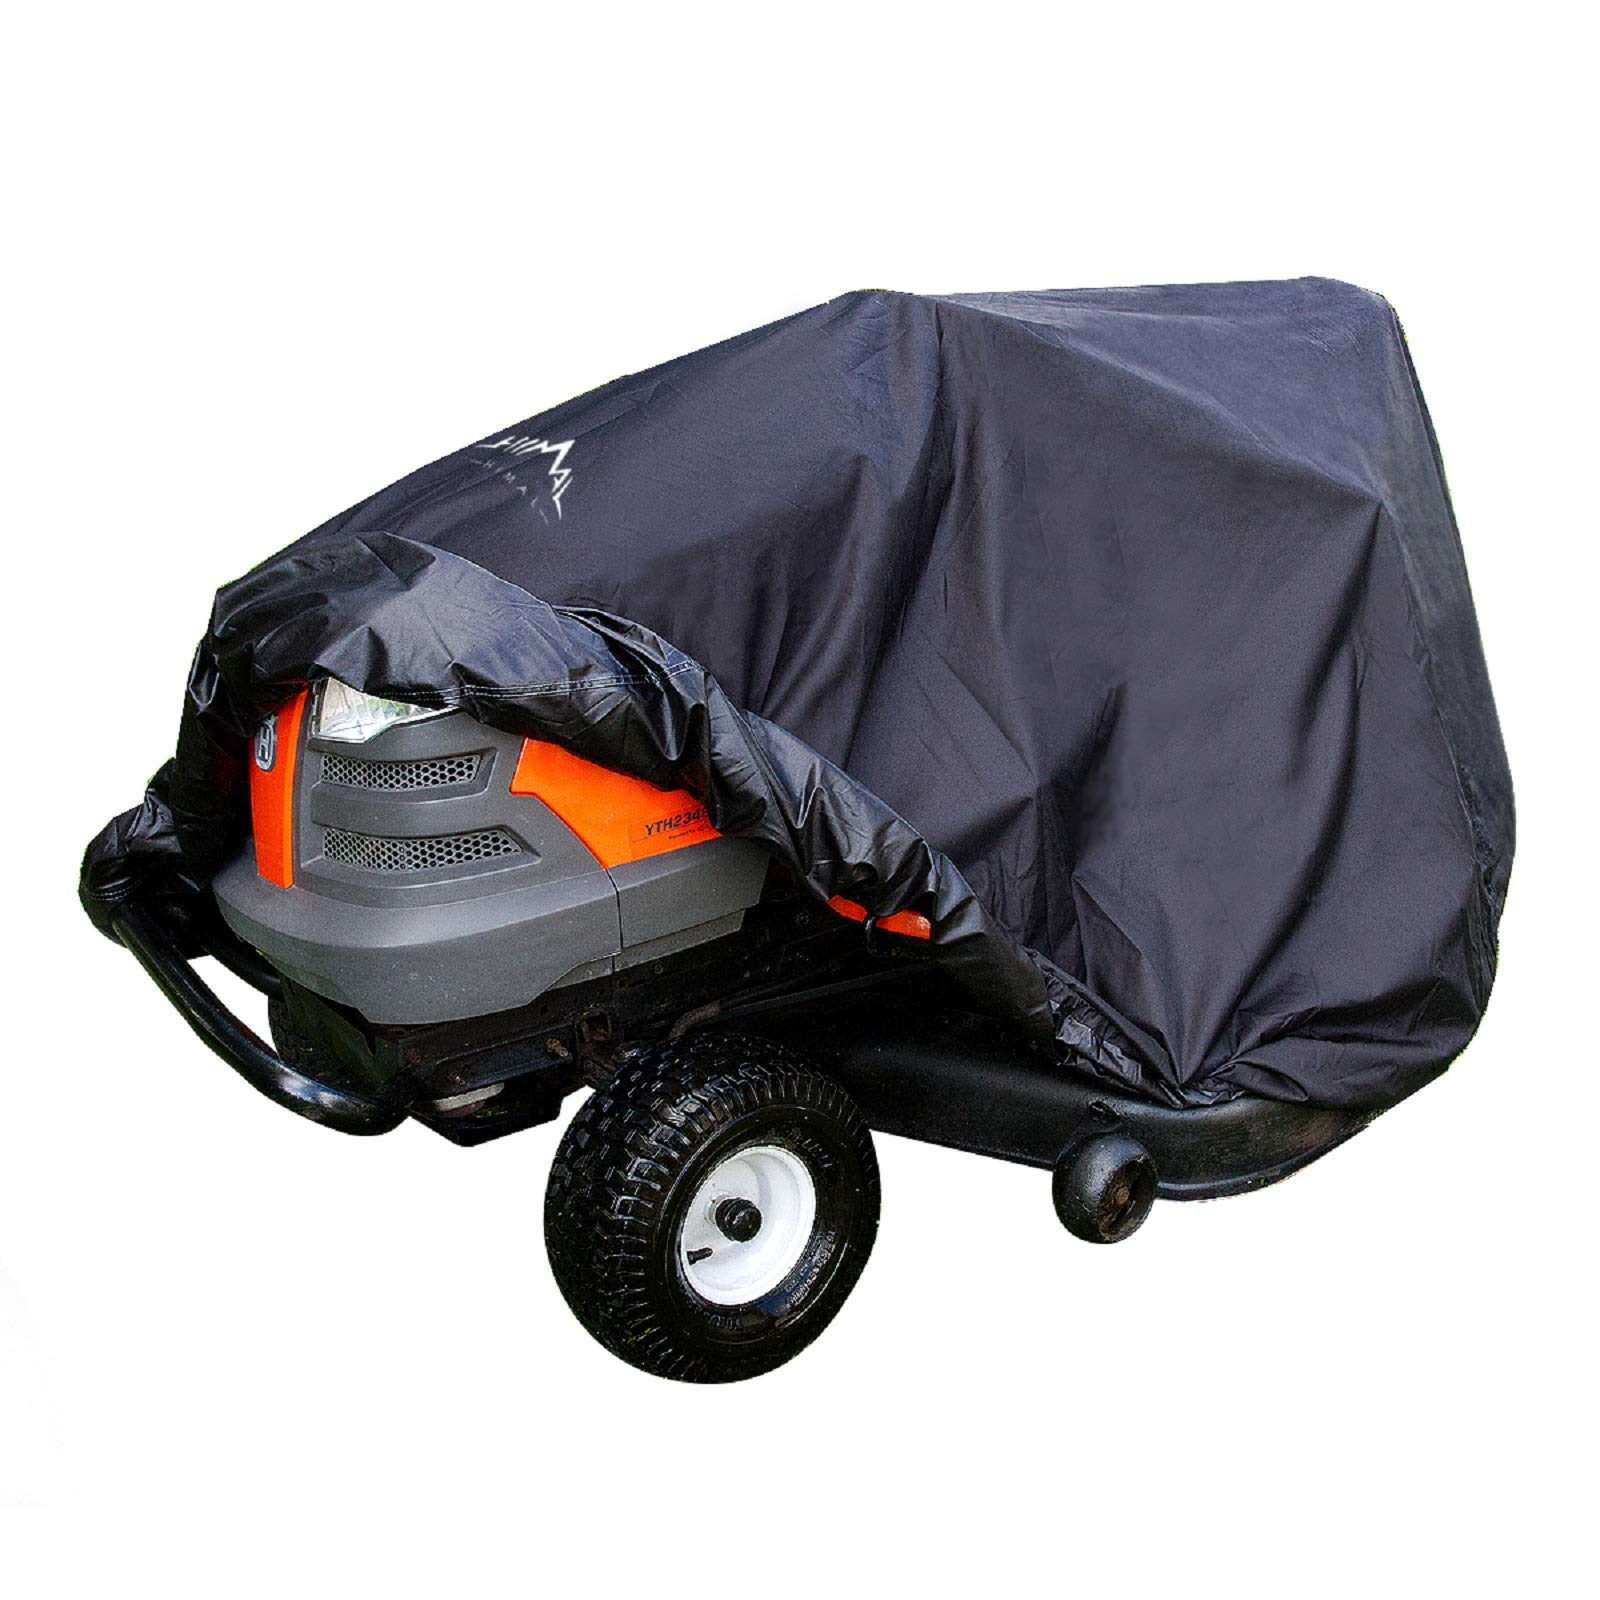 Himal Pro Lawn Mower Cover - Heavy Duty 600D Polyester Oxford, Waterproof, UV Resistant, Universal Size Tractor Cover Fits Decks up to 54'' with Storage Bag, Black